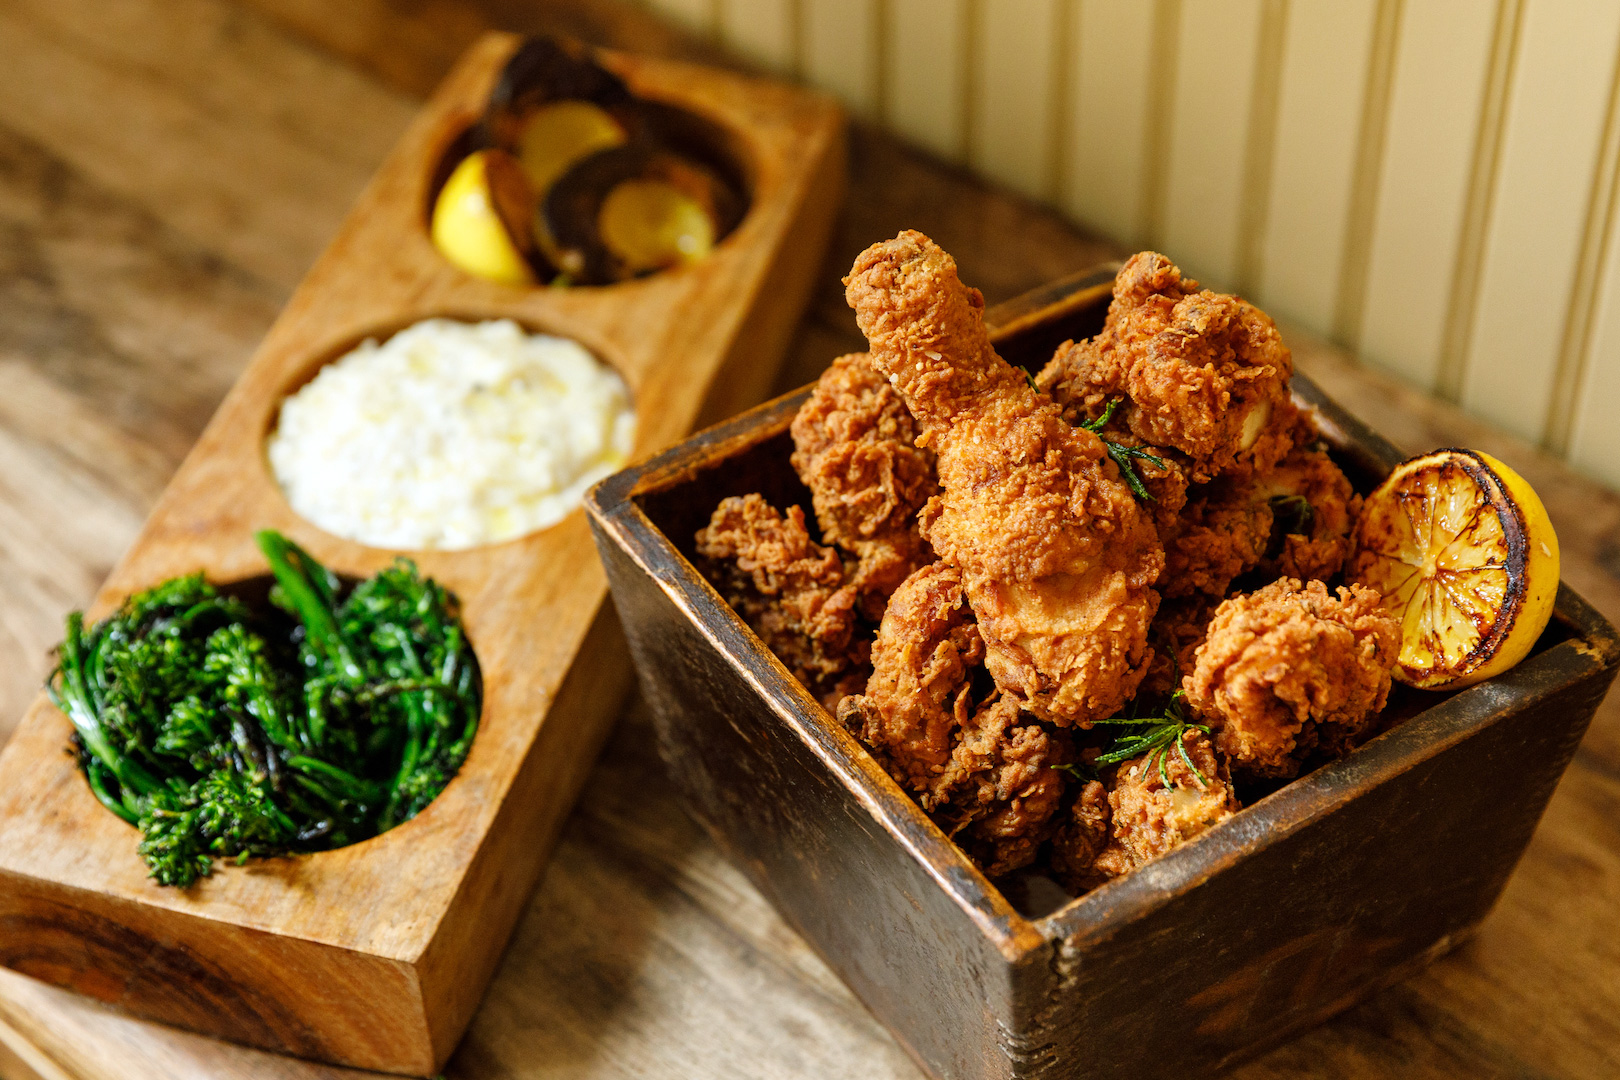 Town Hall's fried chicken is consistently a highlight.